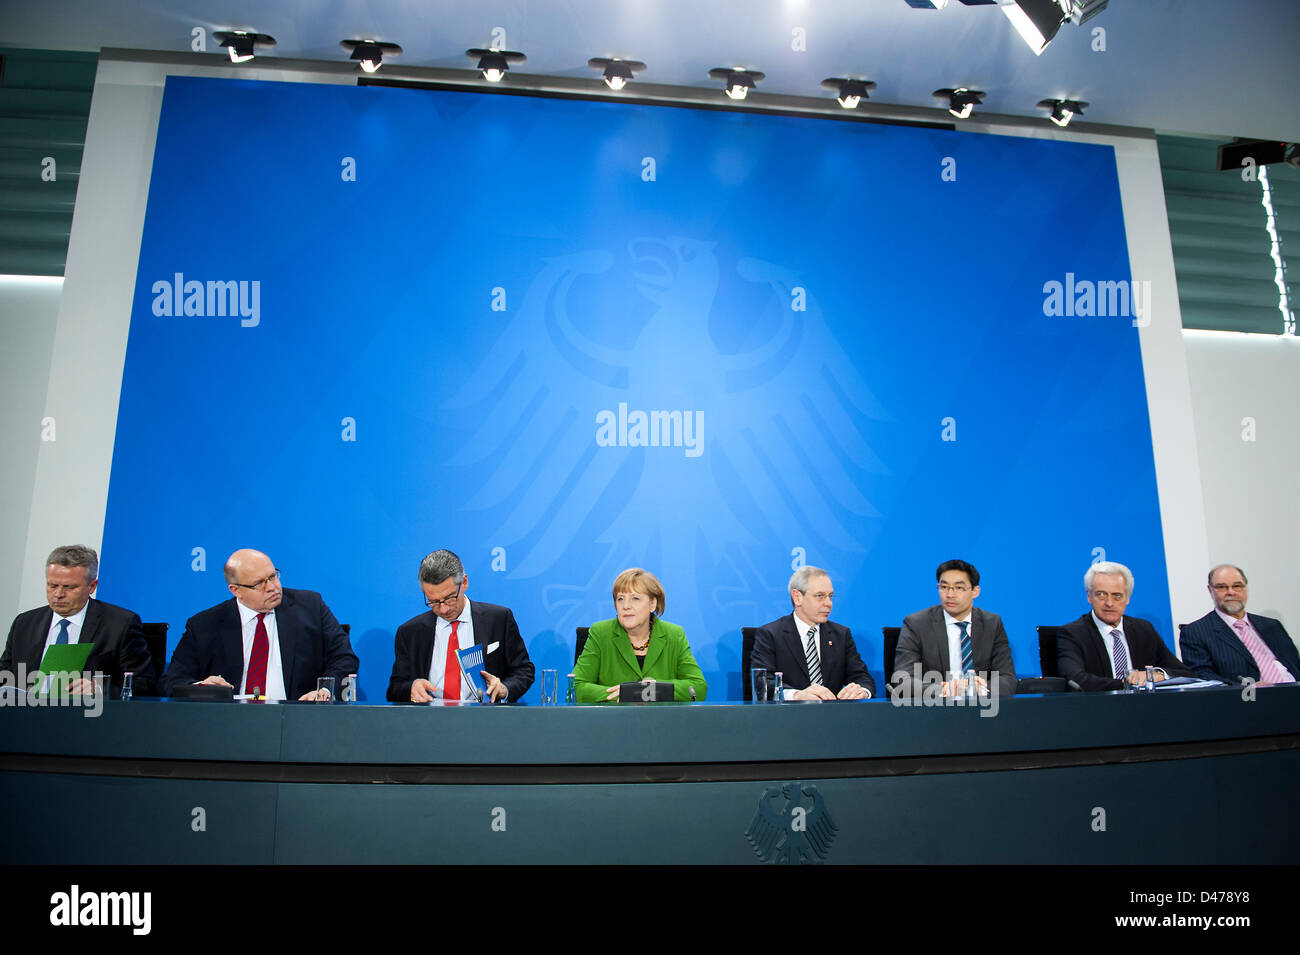 Berlin, Germany. 7th March 2013. German Chancellor Angela Merkel speak in a press conference about the new plans - Stock Image